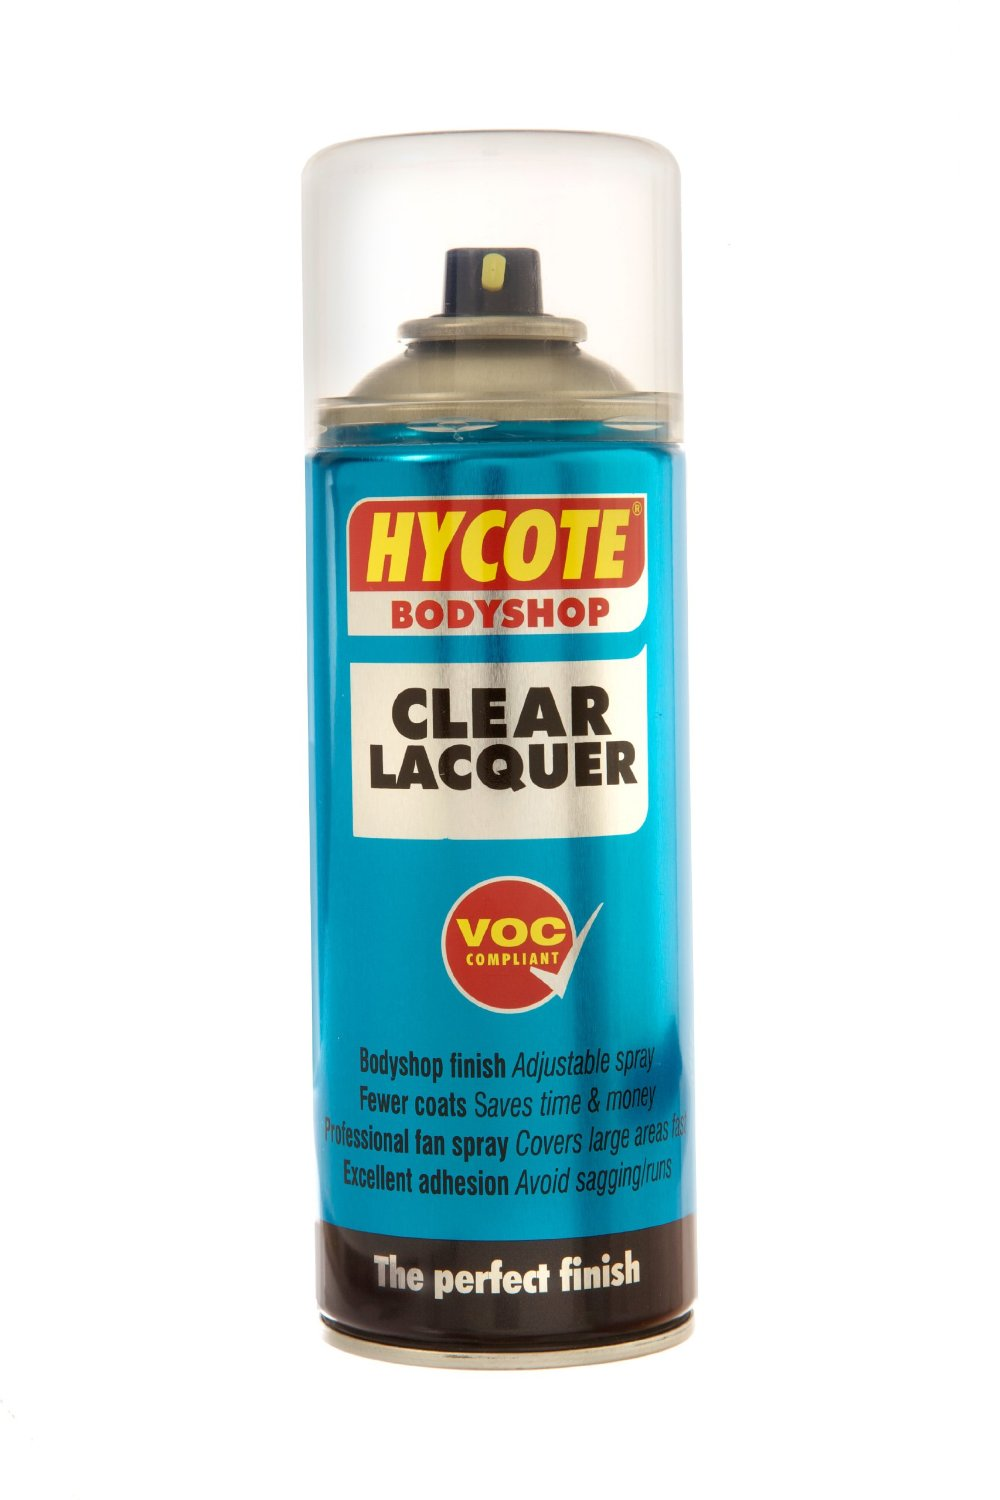 Hycote Body Shop Clear Lacquer Aerosol Spray Paint 400ml Tough Durable Finish